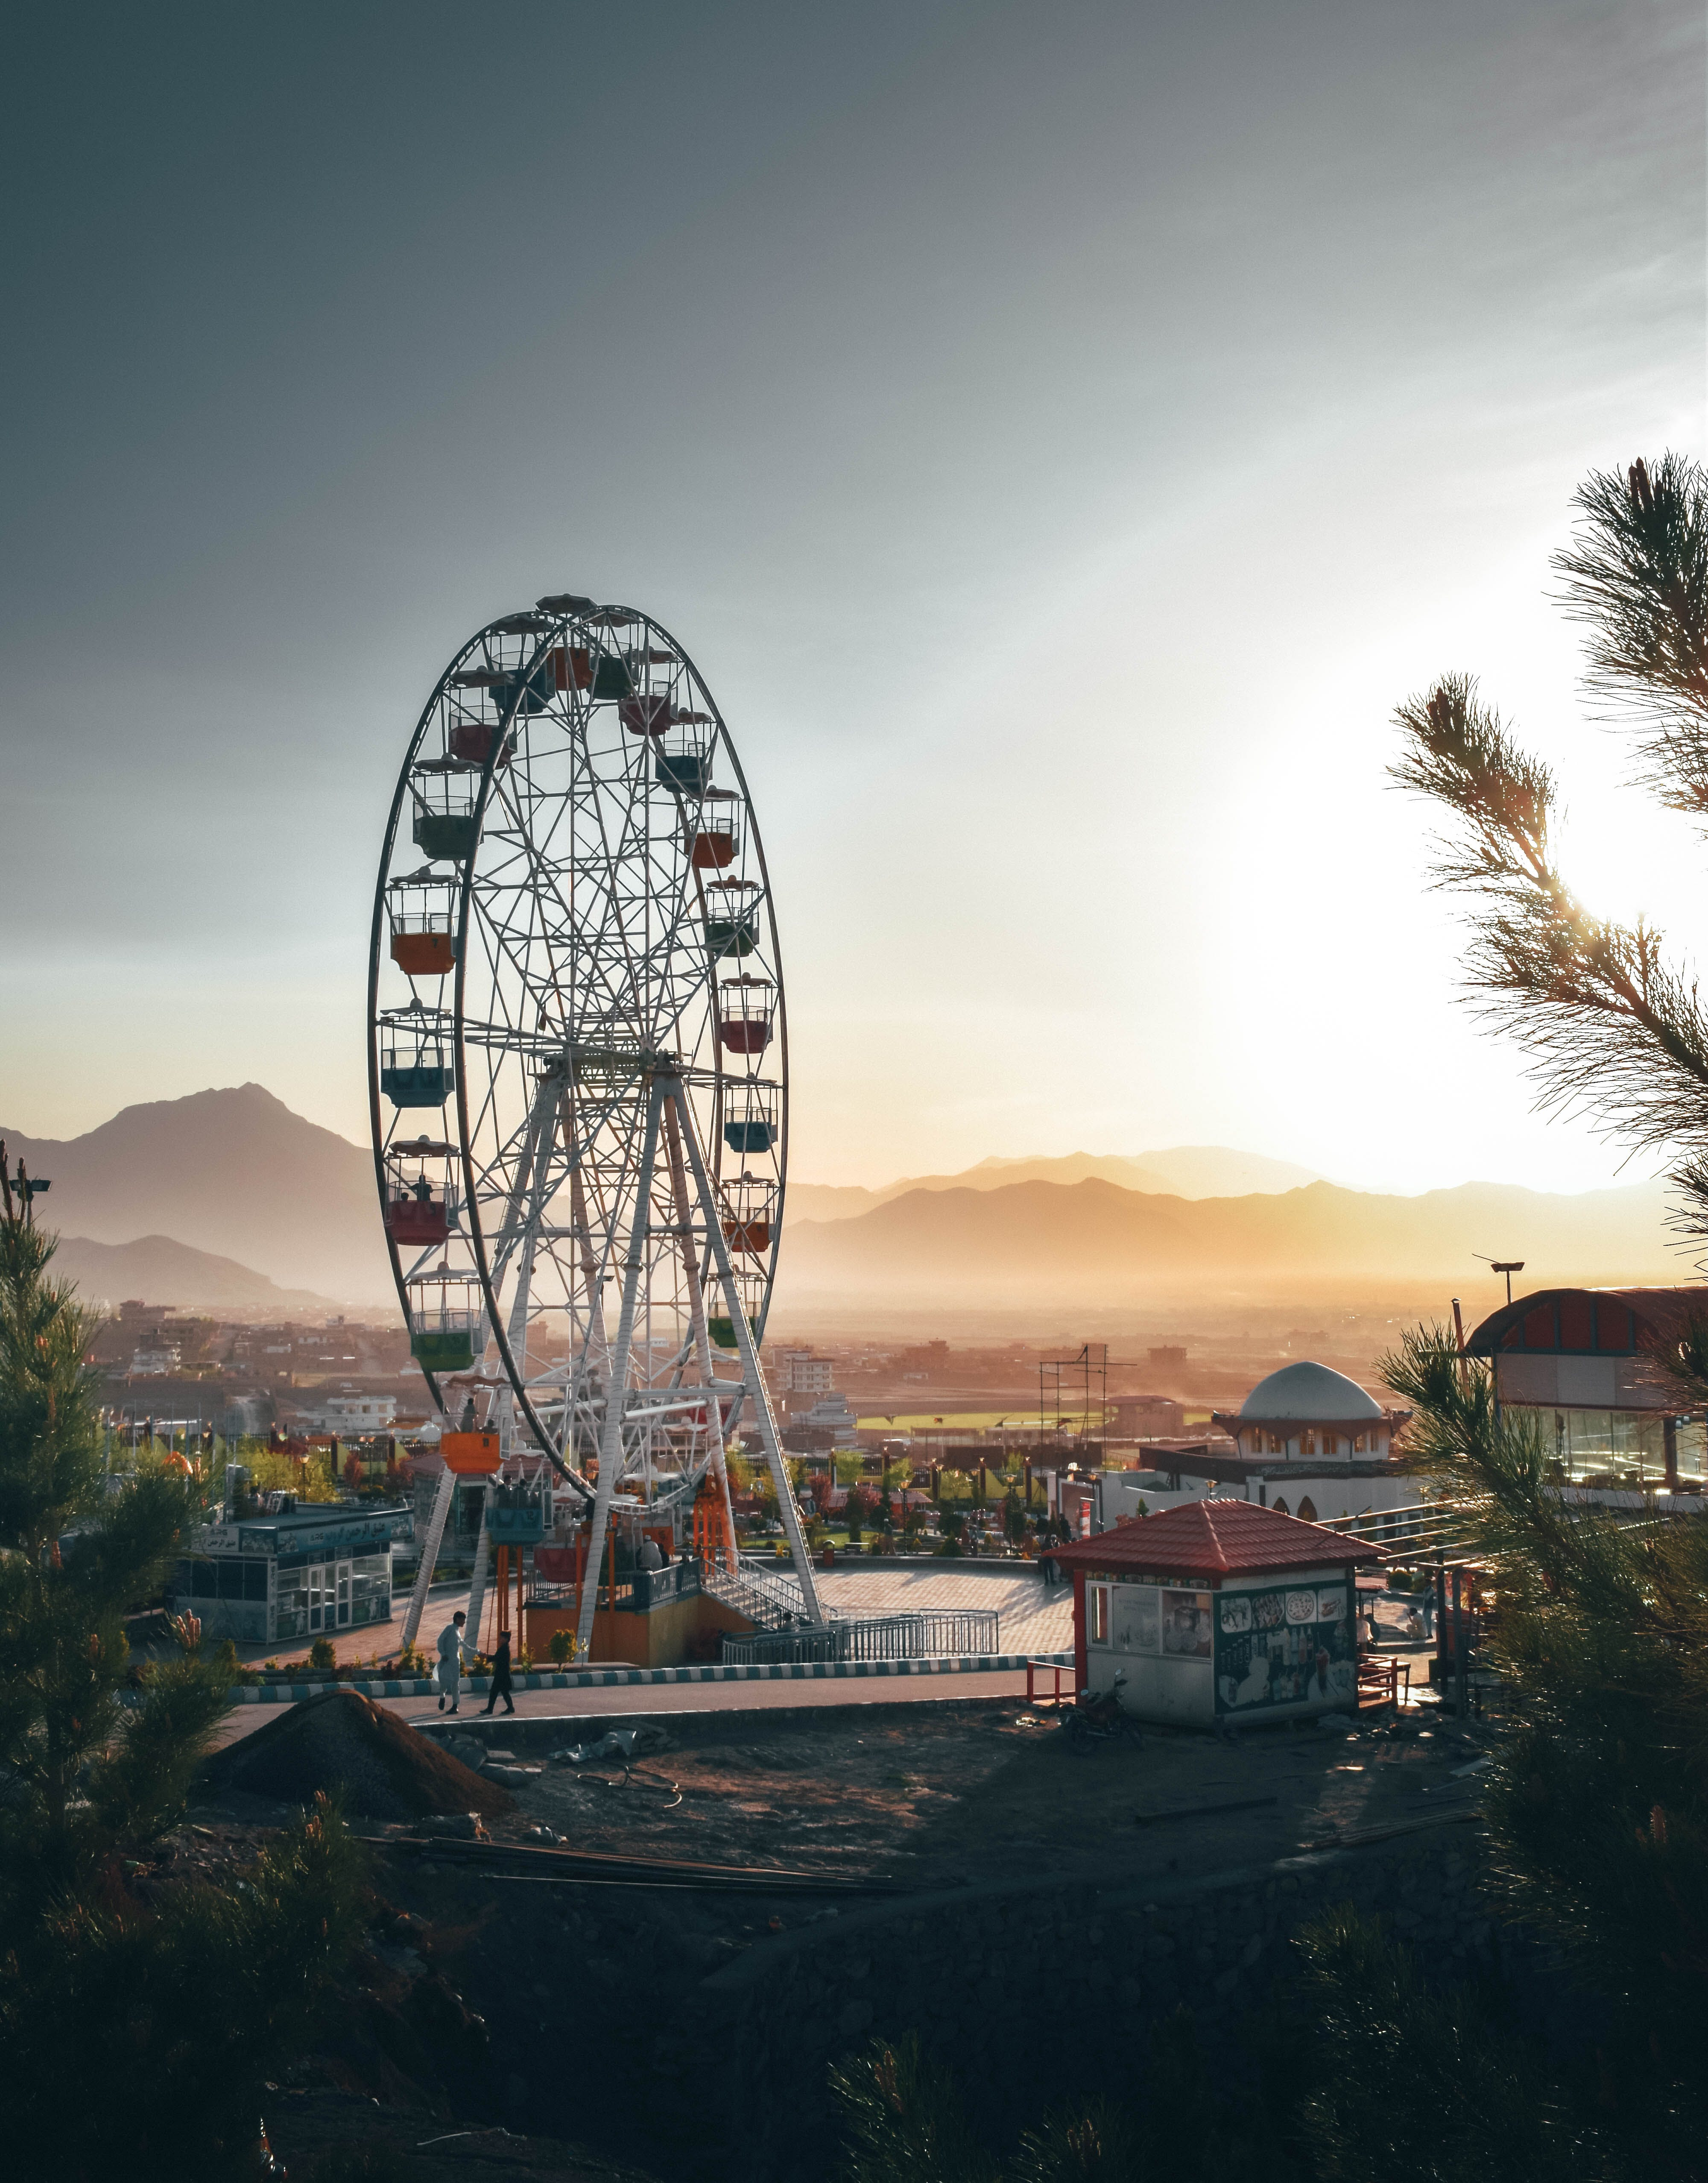 Photo of Ferris Wheel in Amusement Park